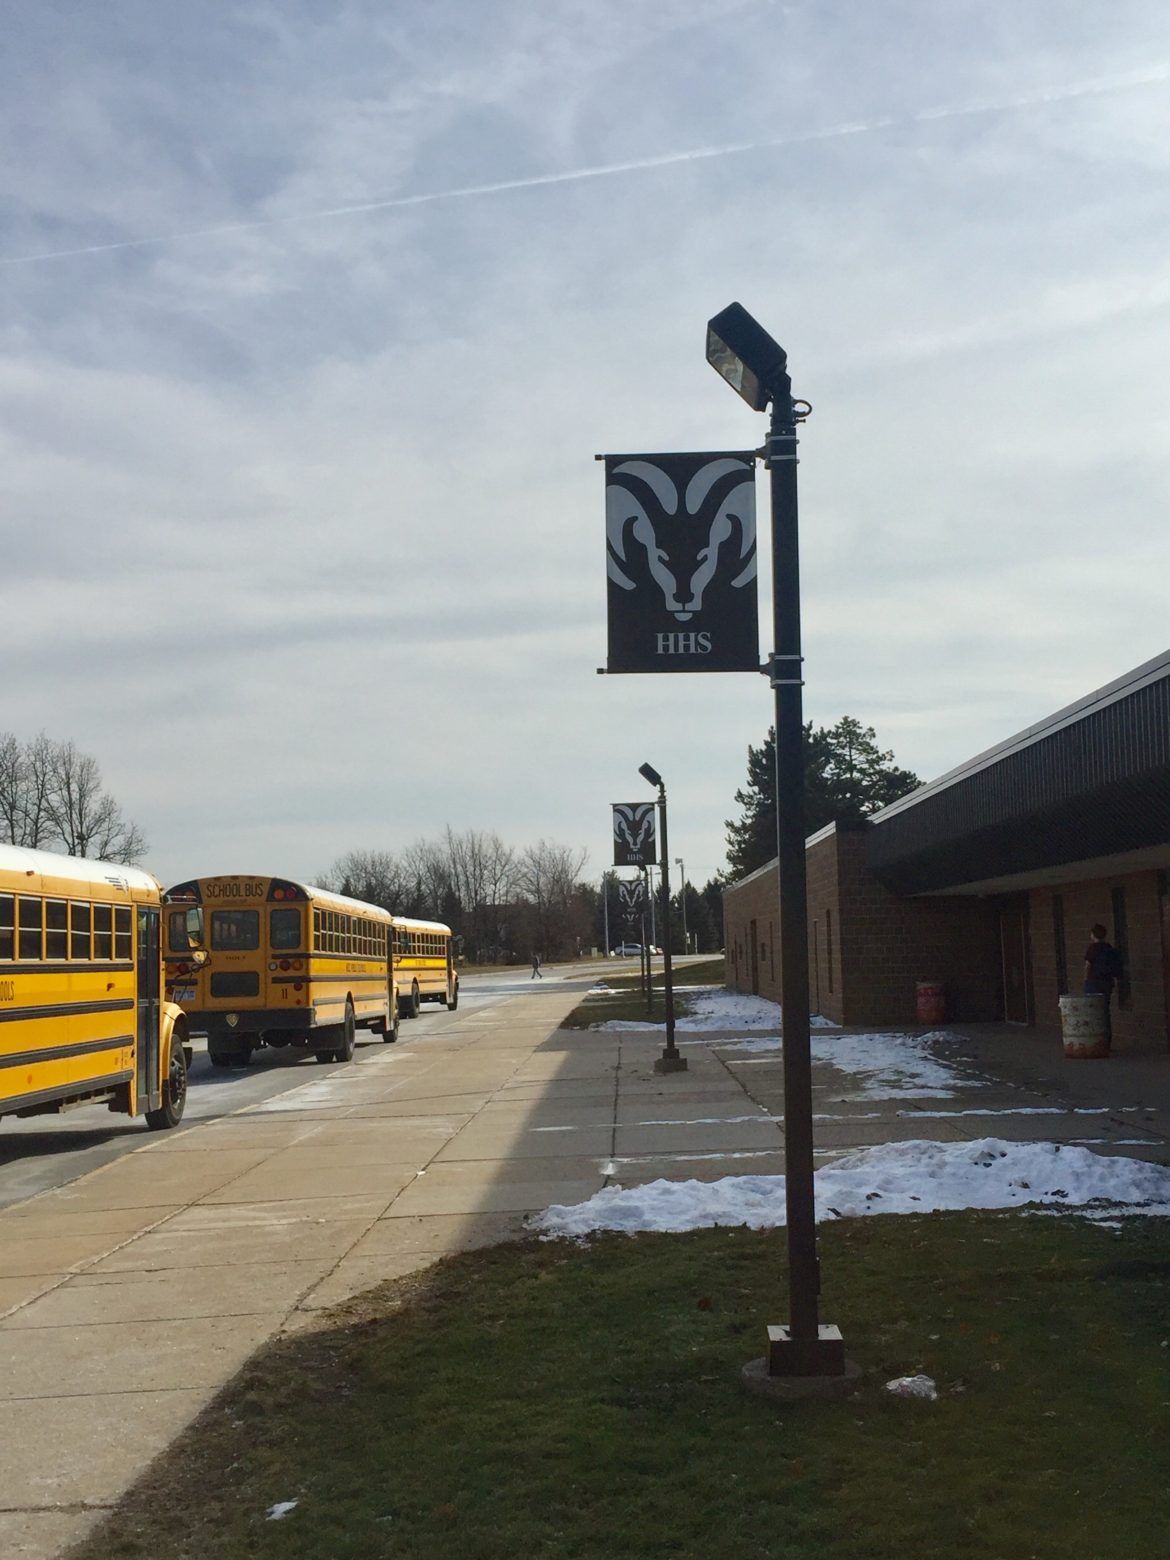 Buses line the side parking lot of the Holt North High school campus on Feb. 10, 2017. The buses have to pick up the students at the North Campus before the students at the Main campus because of the slight schedule difference.